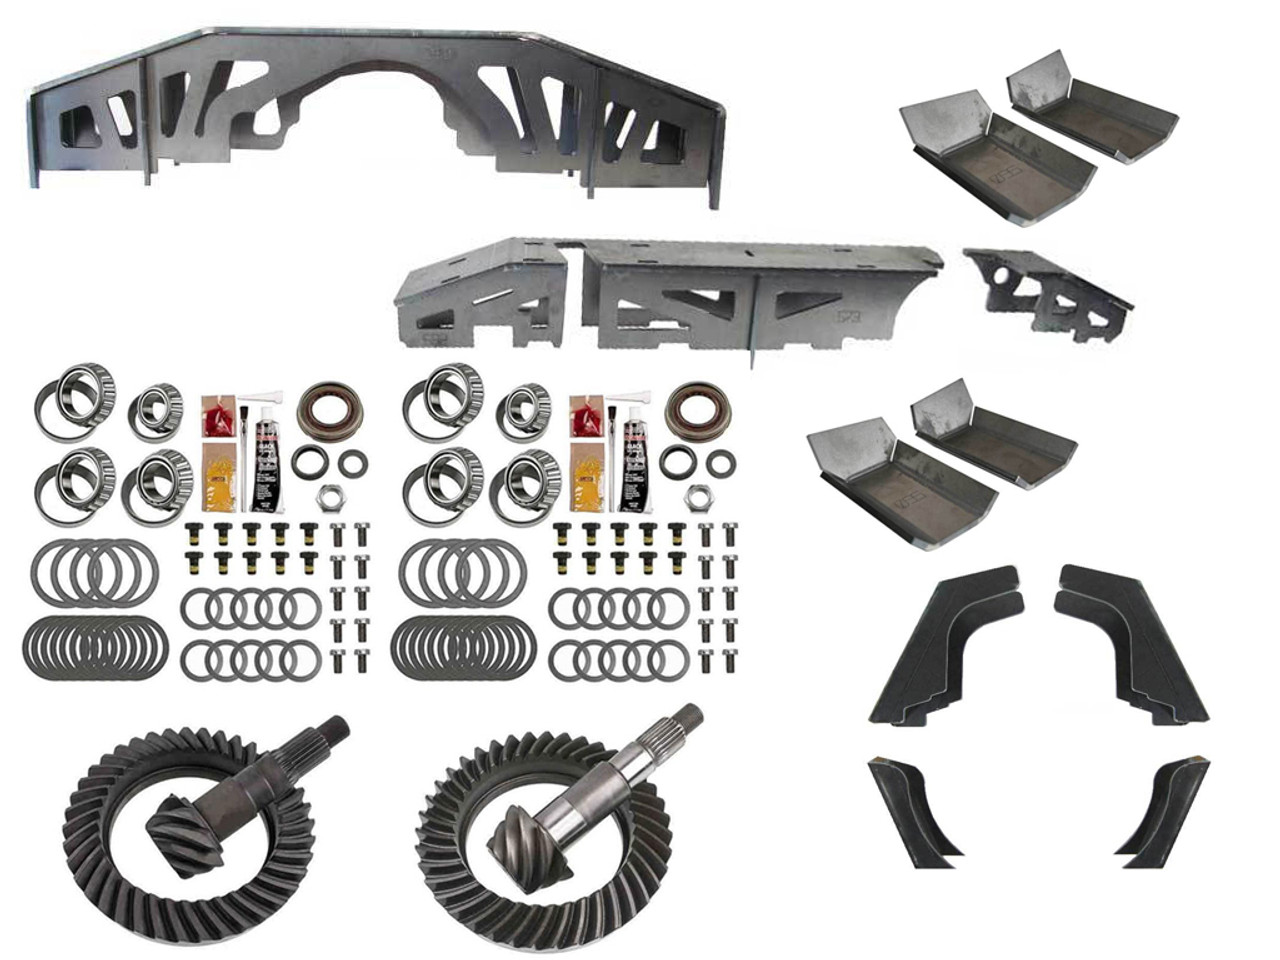 Jeep JK Wrangler STAGE 3 Axle Upgrade Kit - Gear and Housing ...